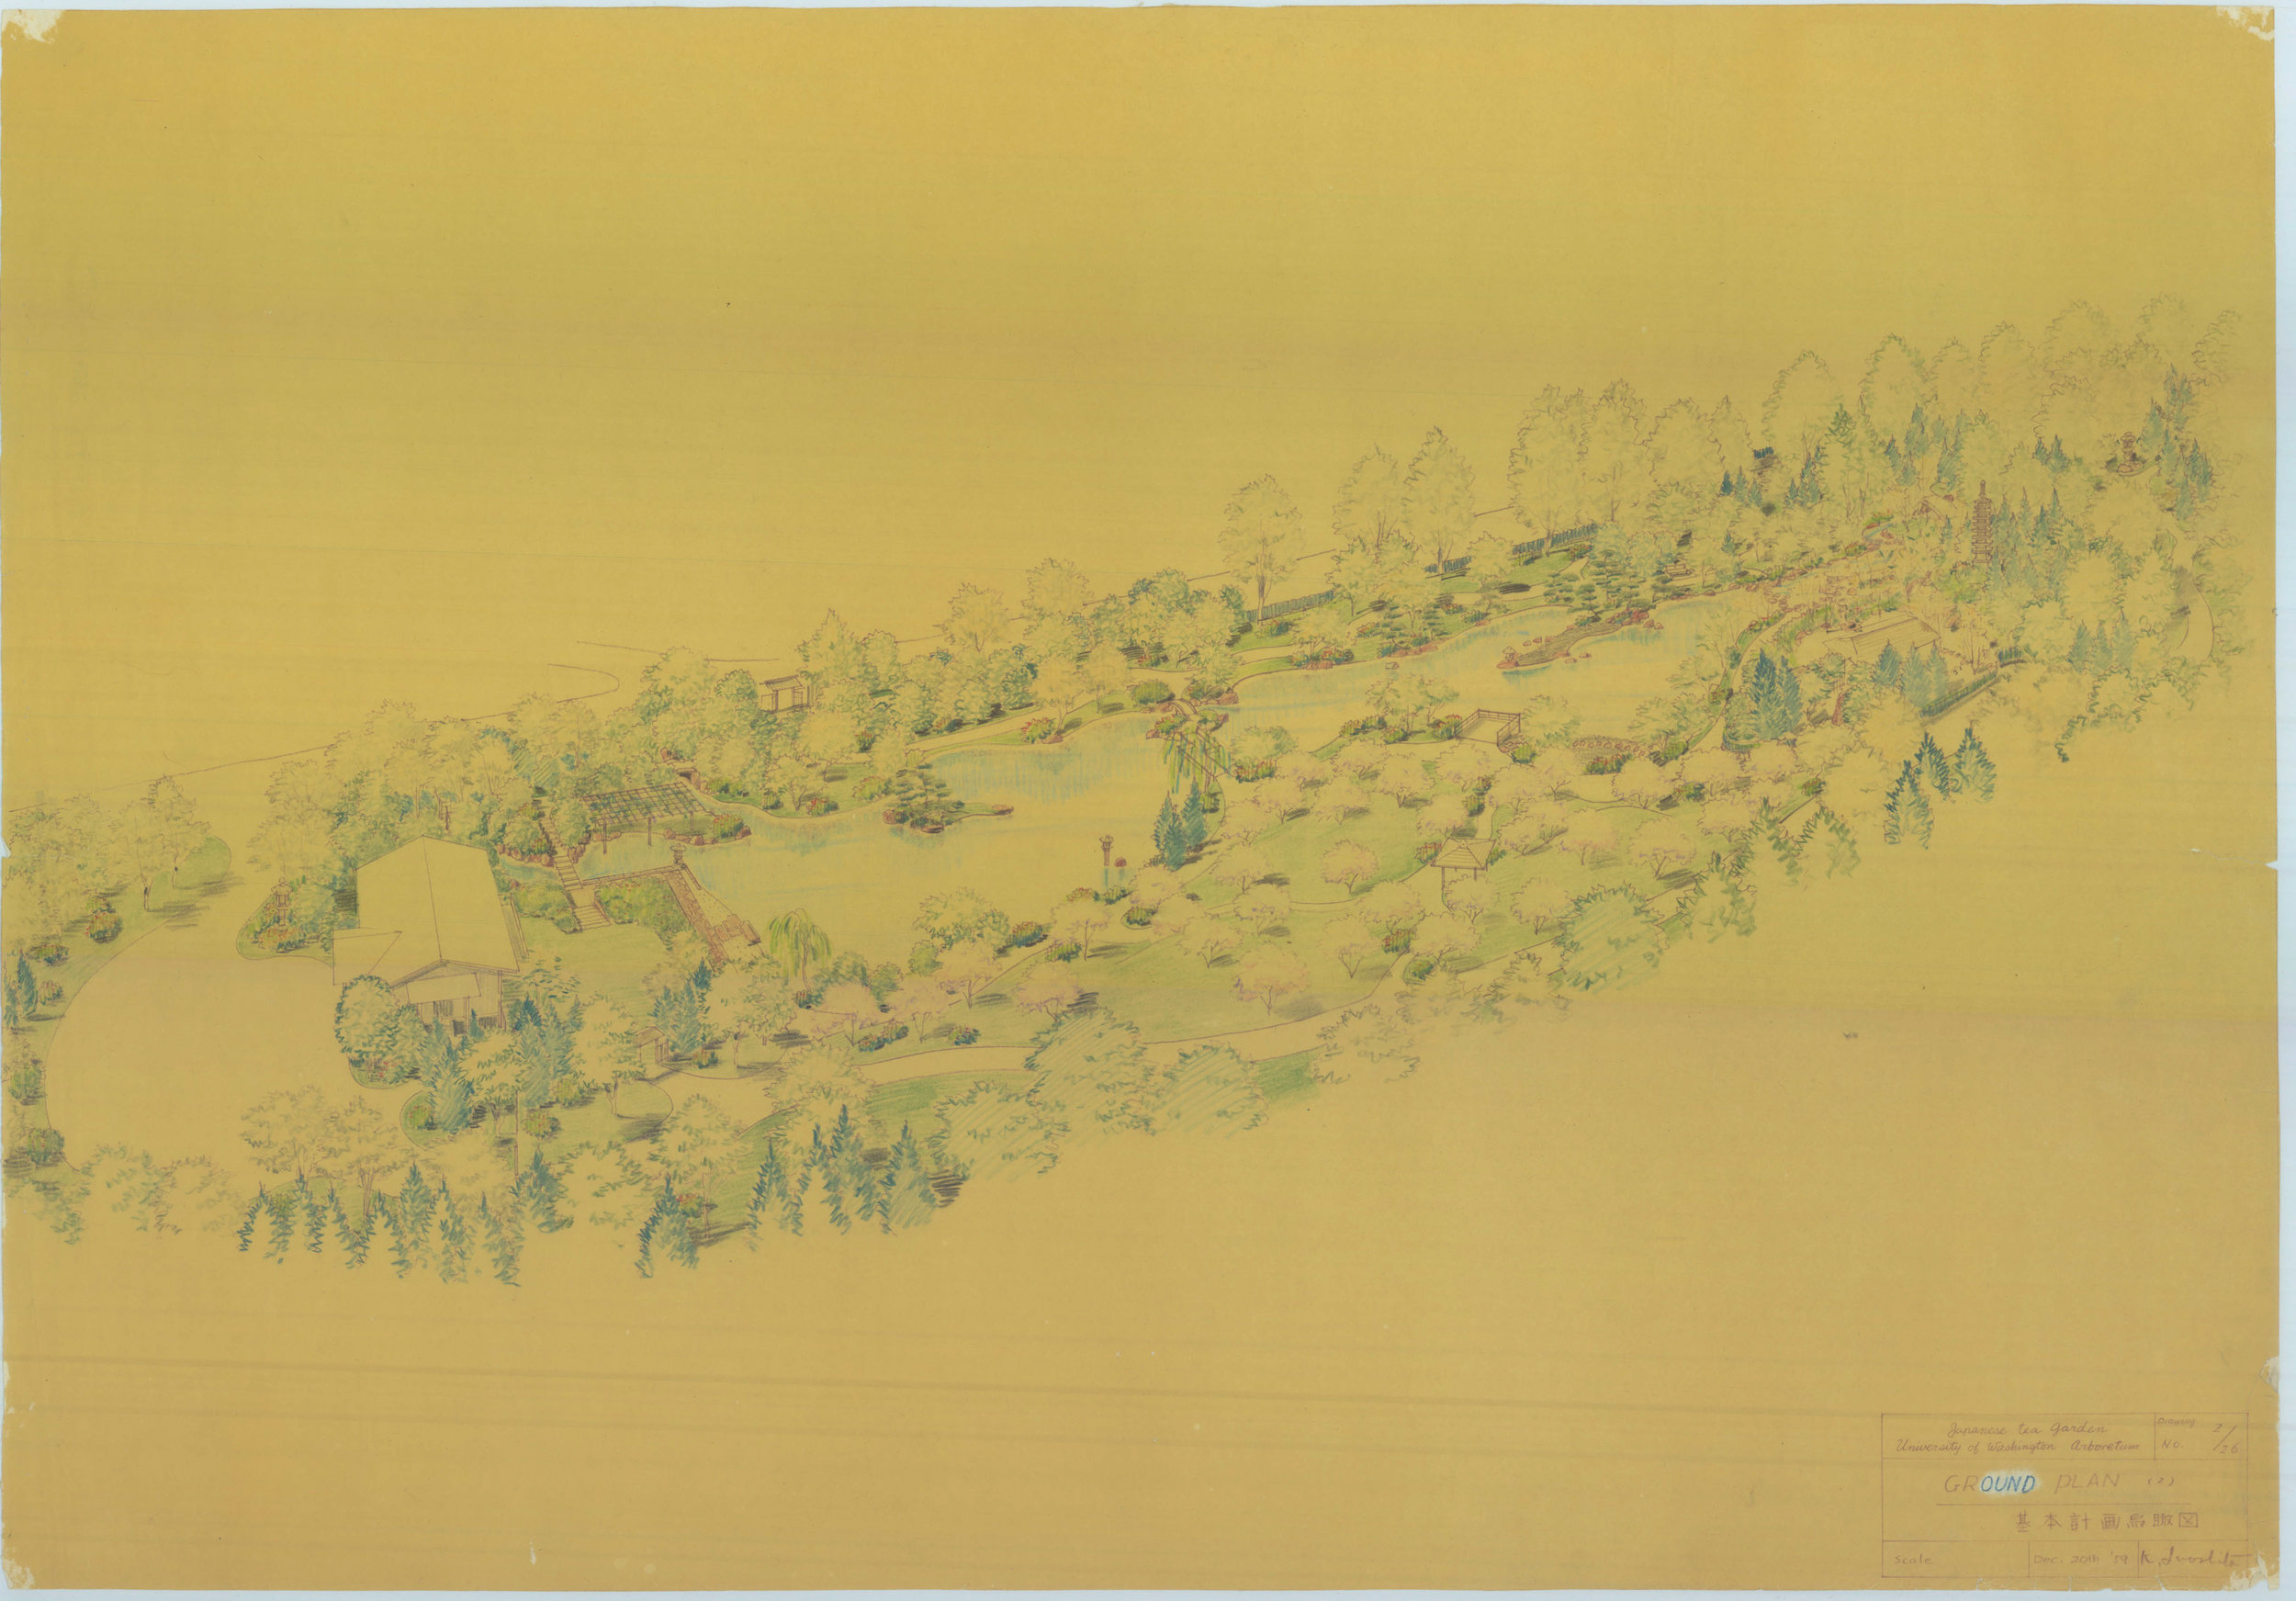 Figure 2: An hand-colored rendering of the Seattle Japanese Garden, part of the original 1959 plan set.